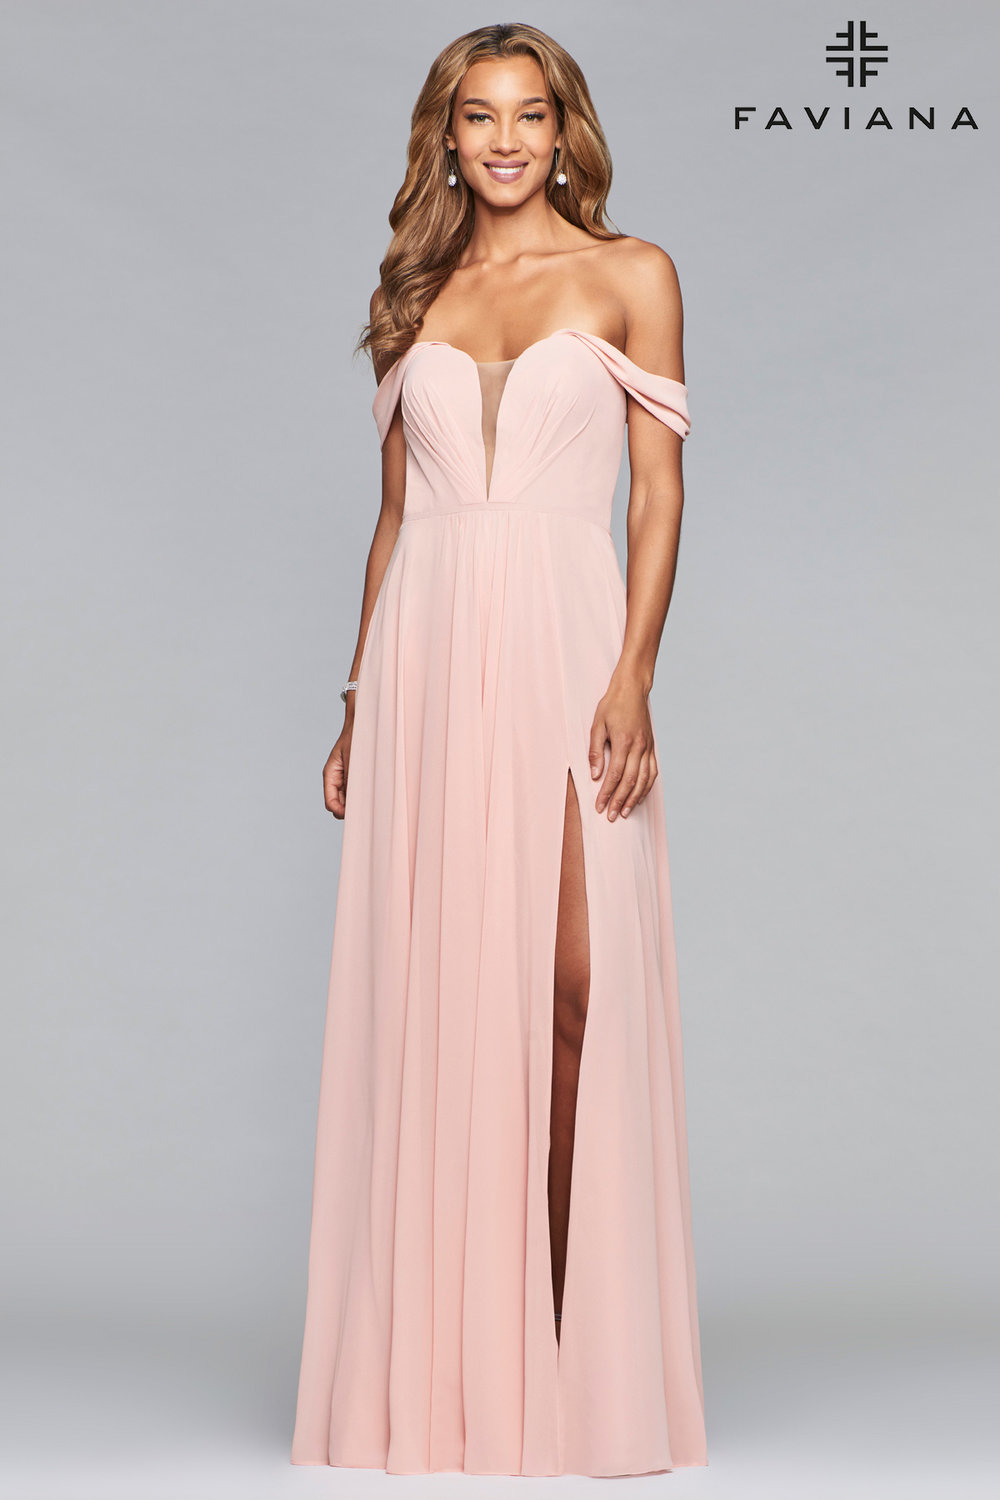 Off the Shoulder Chiffon with Slit